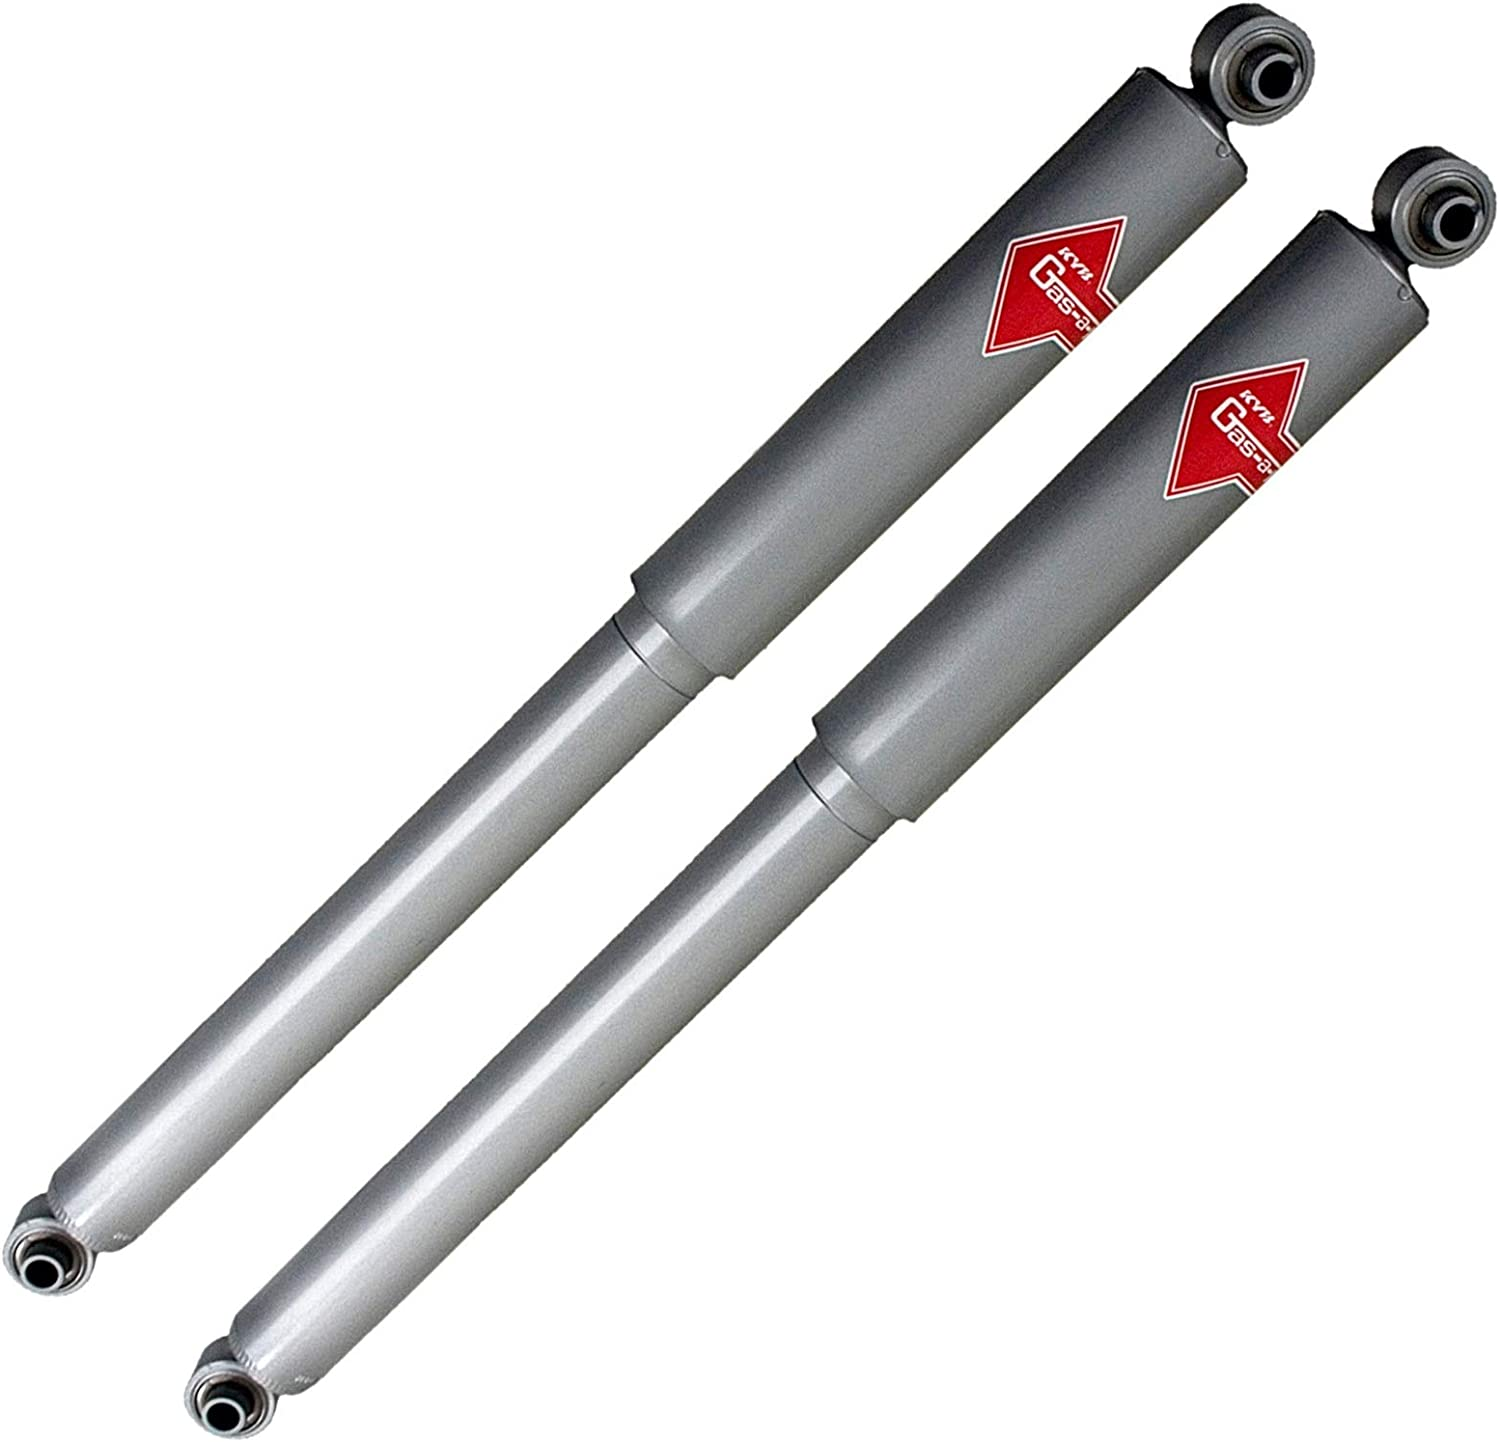 NEW Pair Set of 2 Front KYB Gas-A-Just Shock Absorbers For Dodge Ram 1500 RWD